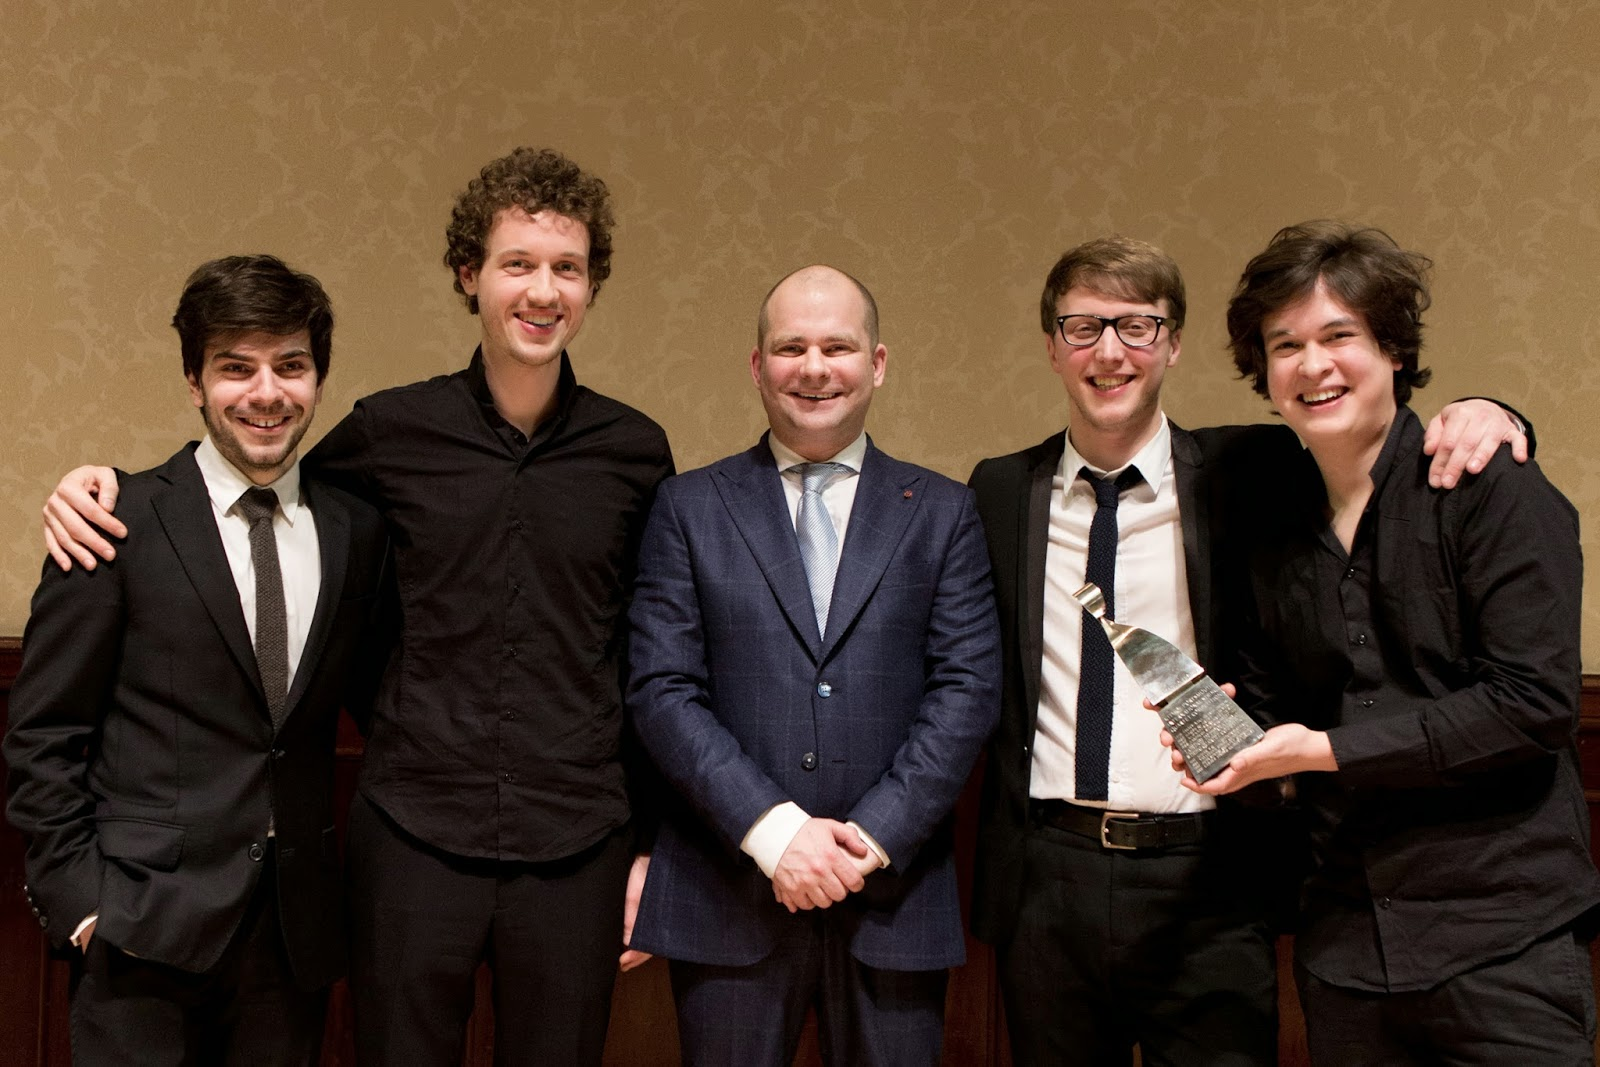 Van Kuijk Quartet receiving their award from competition chairman John Gilhooly - photo Ben Ealovega